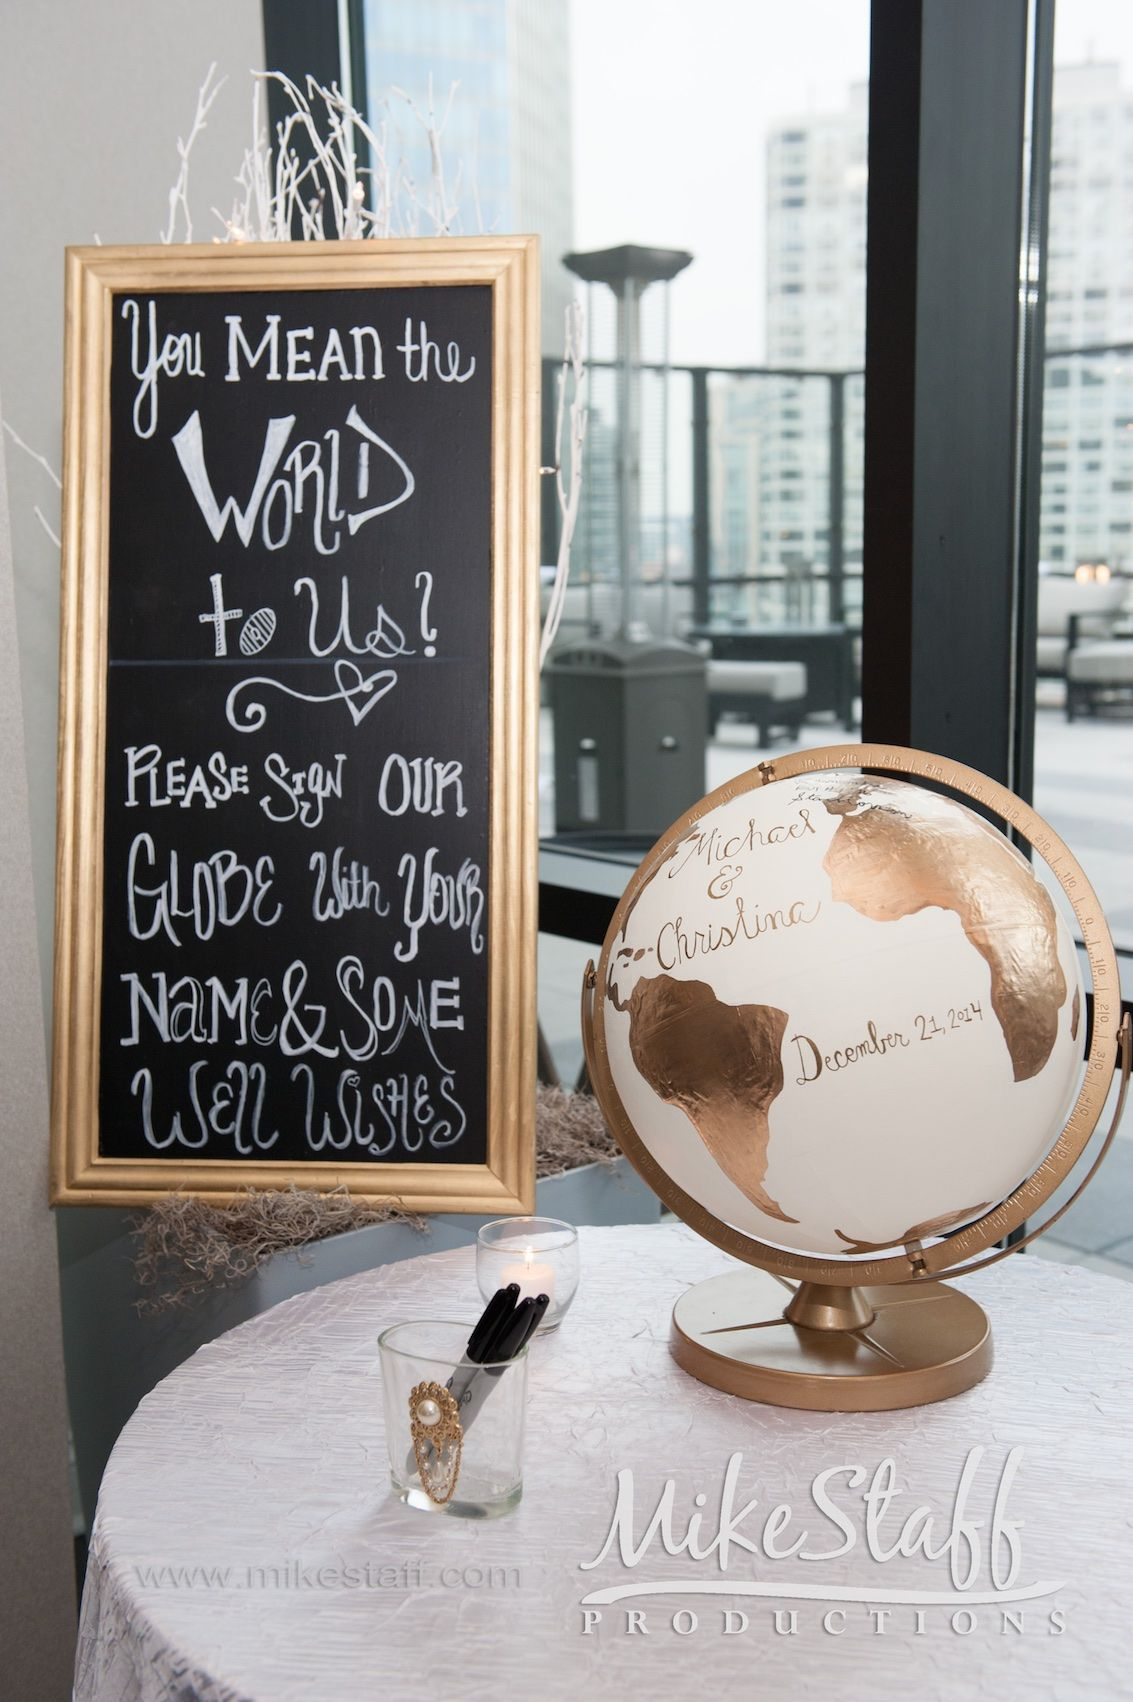 Bathroom sign in book - I Like The Way They Painted The Globe And The Sentiment Behind The Wording On The